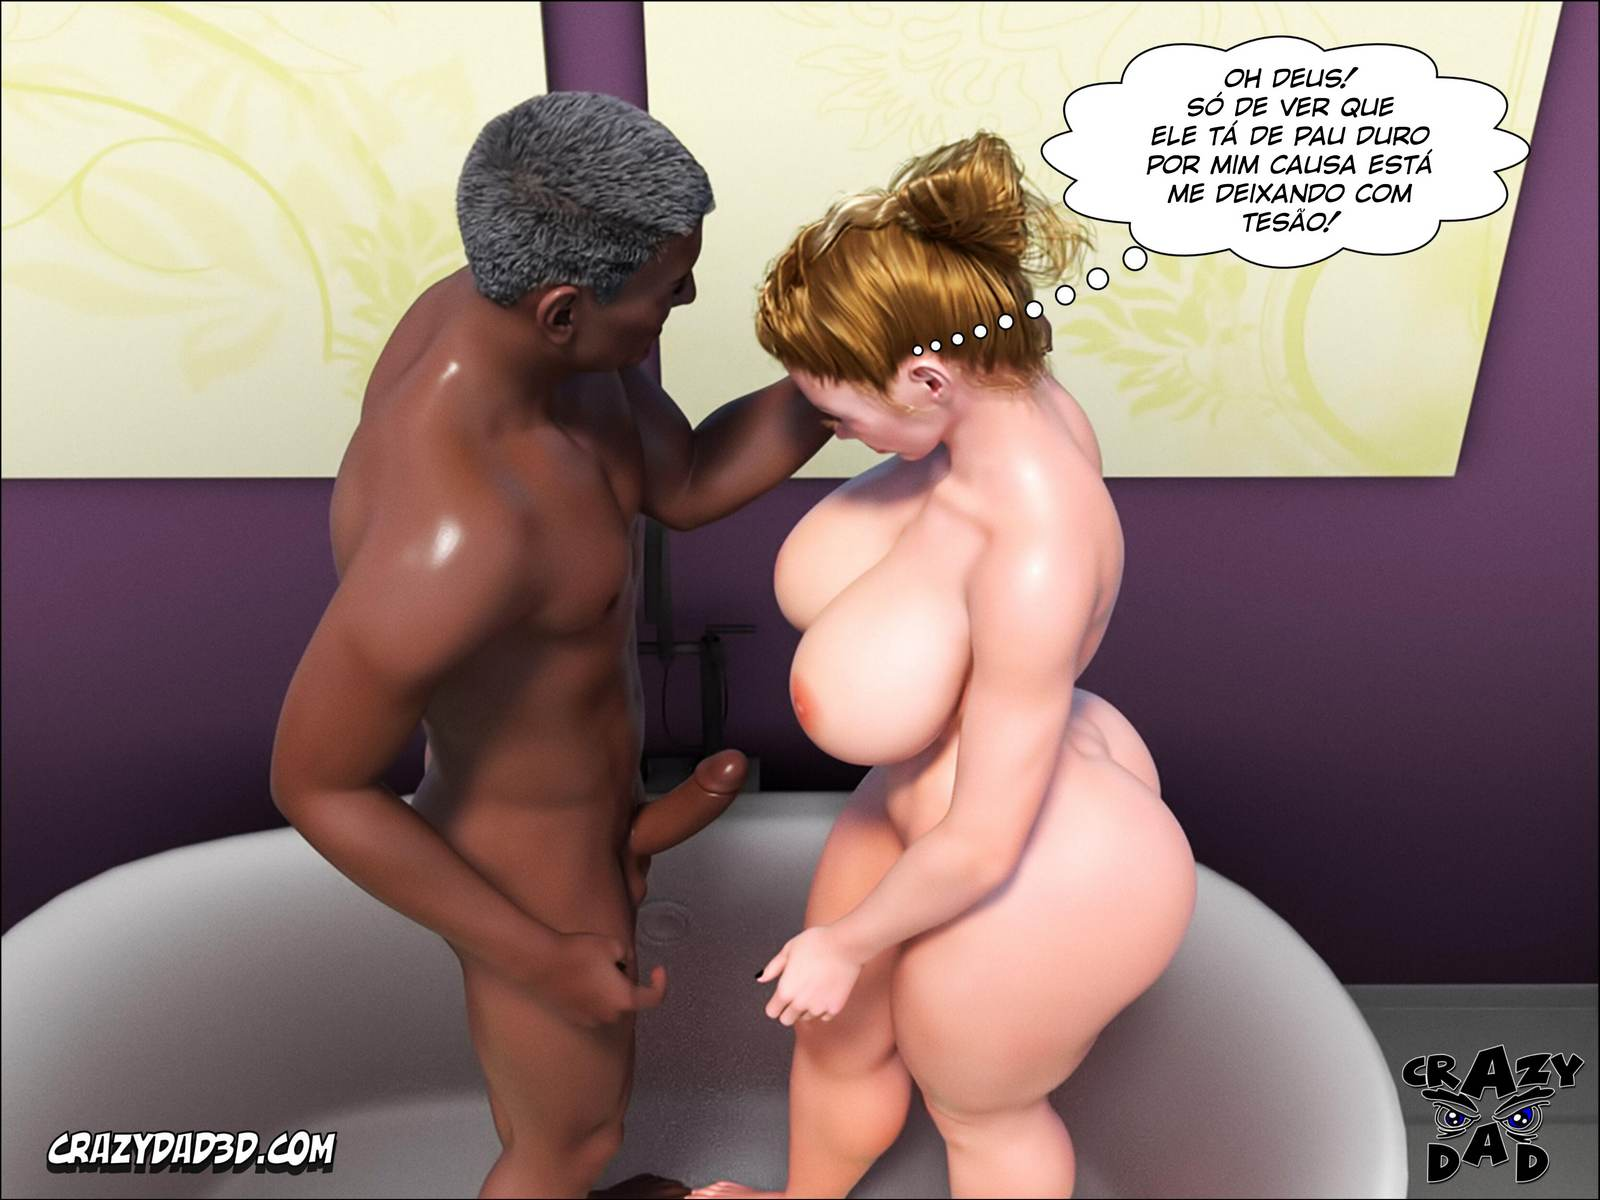 Father in Law at Home part 2 Hentai pt br 55 - interracial, hentai, 3d